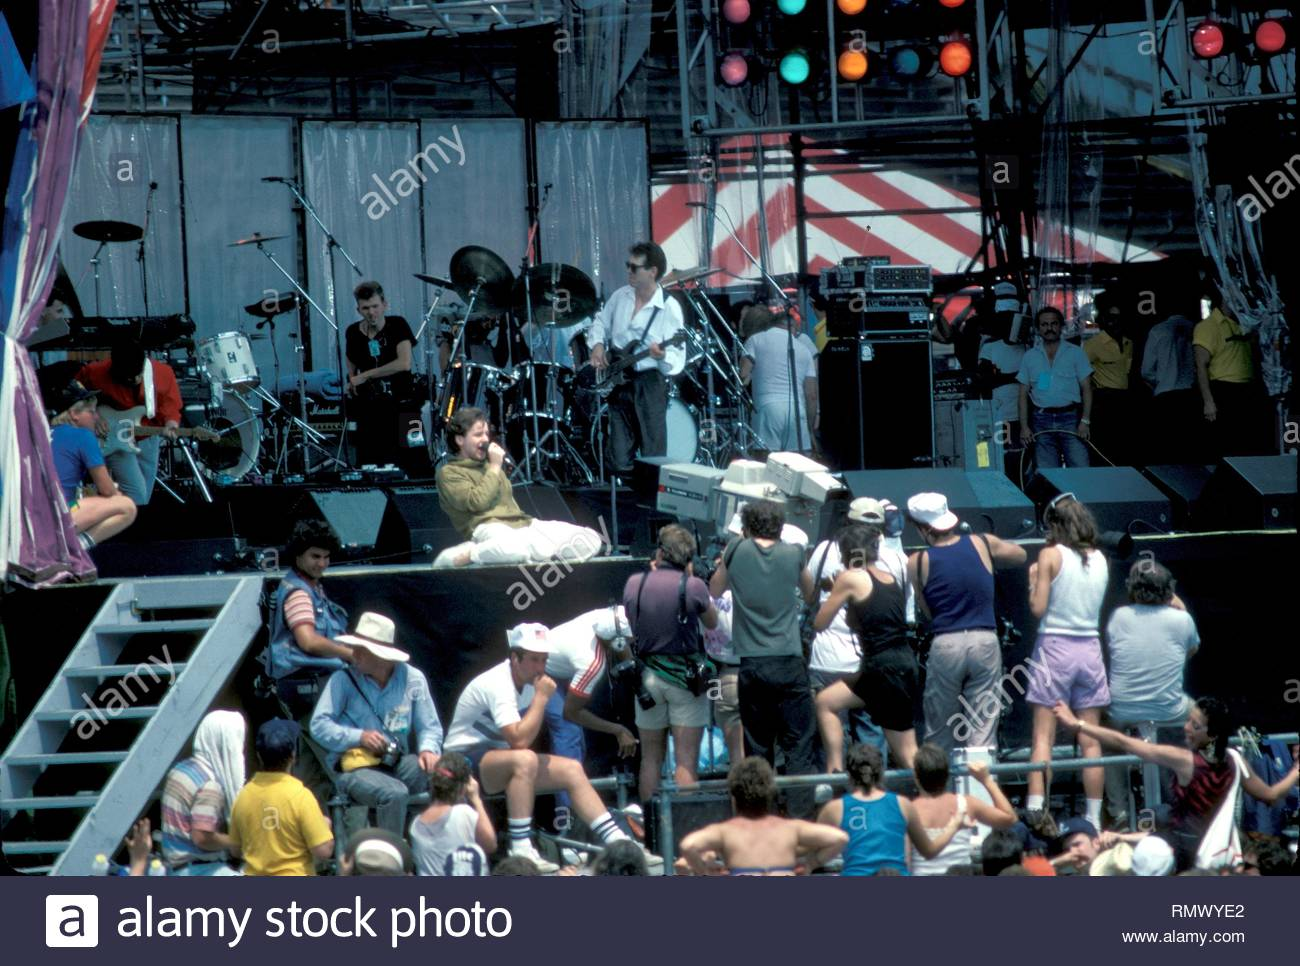 Scottish musician, singer and songwriter Jim Kerr, famous for his work with the band Simple Minds, is shown performing on stage at Live Aid in Philadelphia back in 1985. - Stock Image